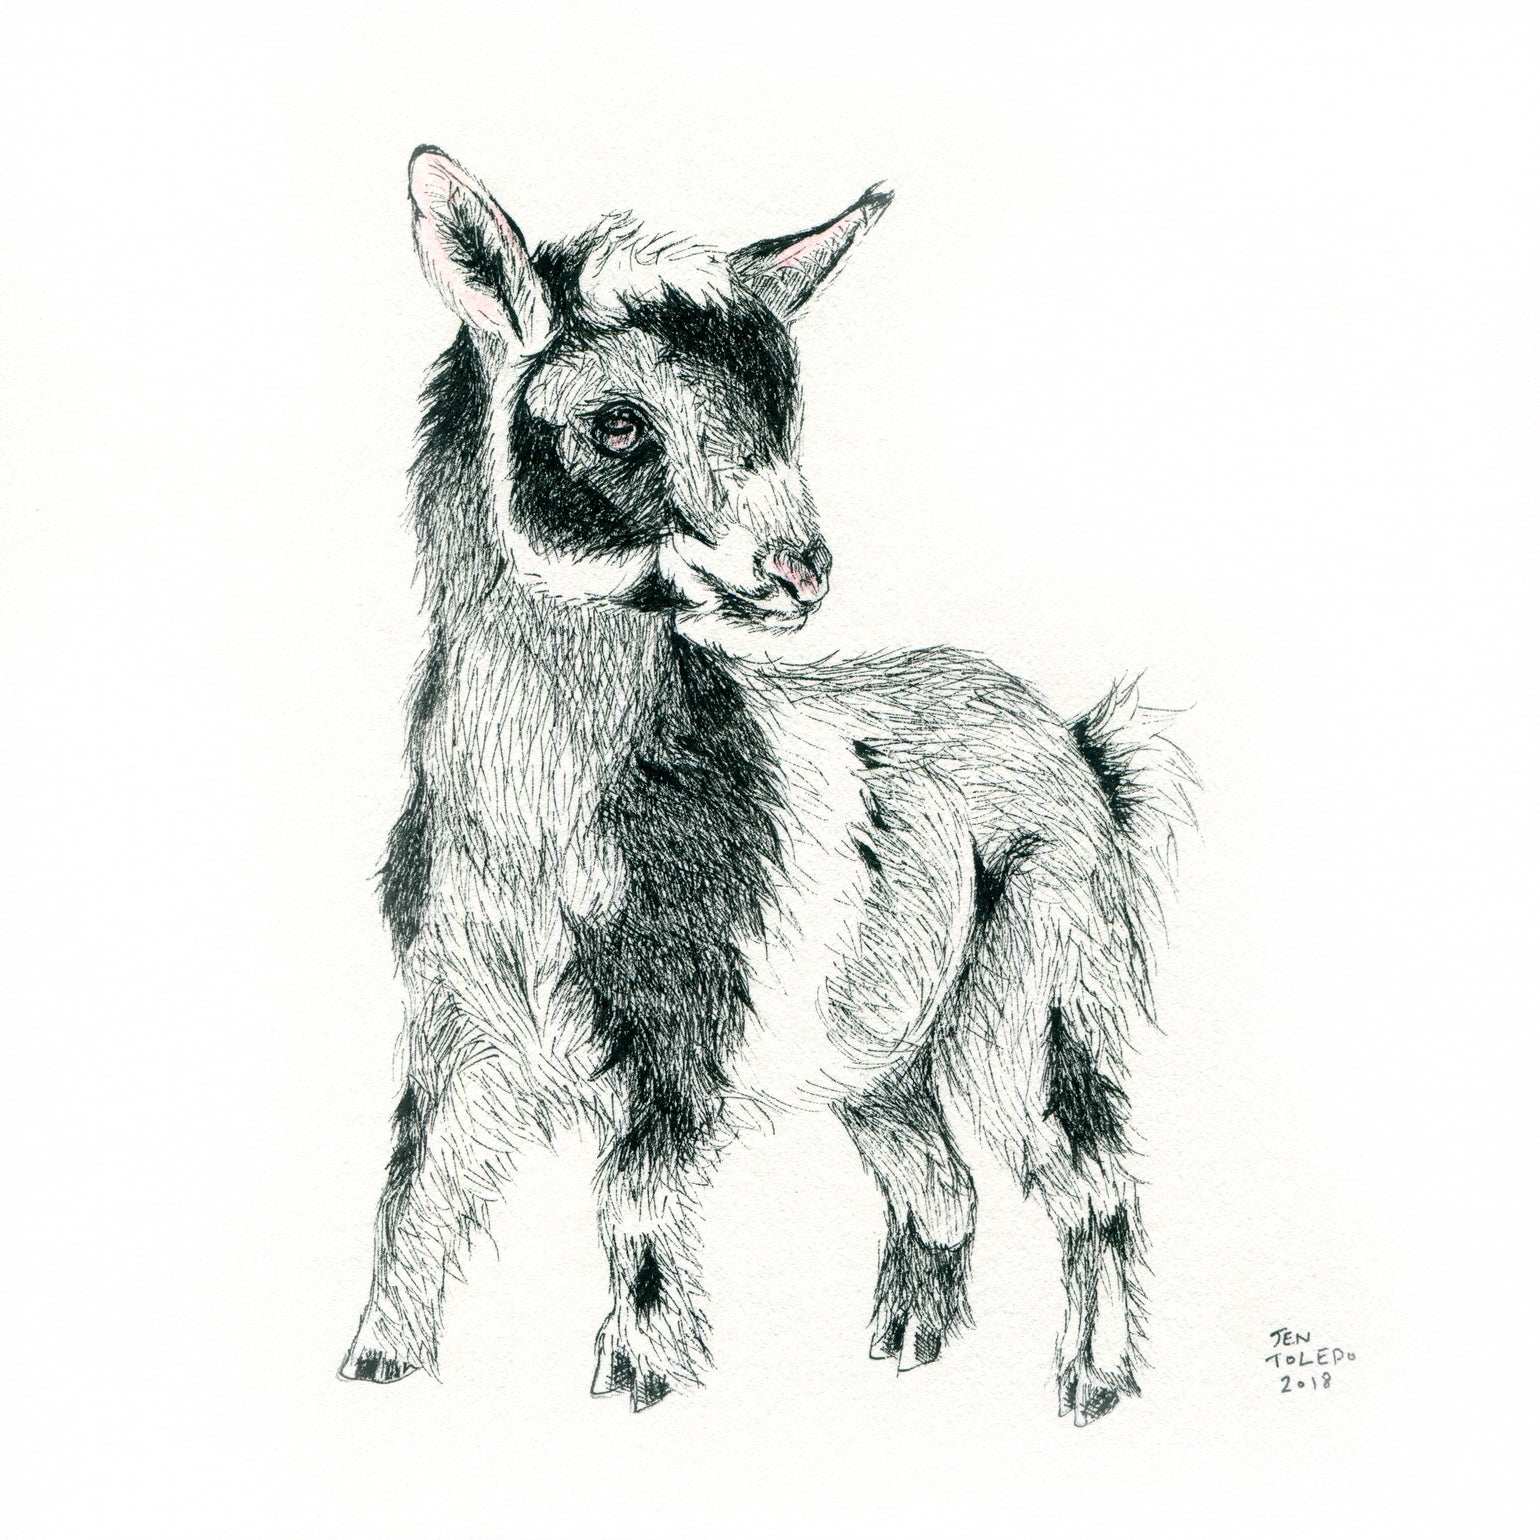 Image of Goat #1